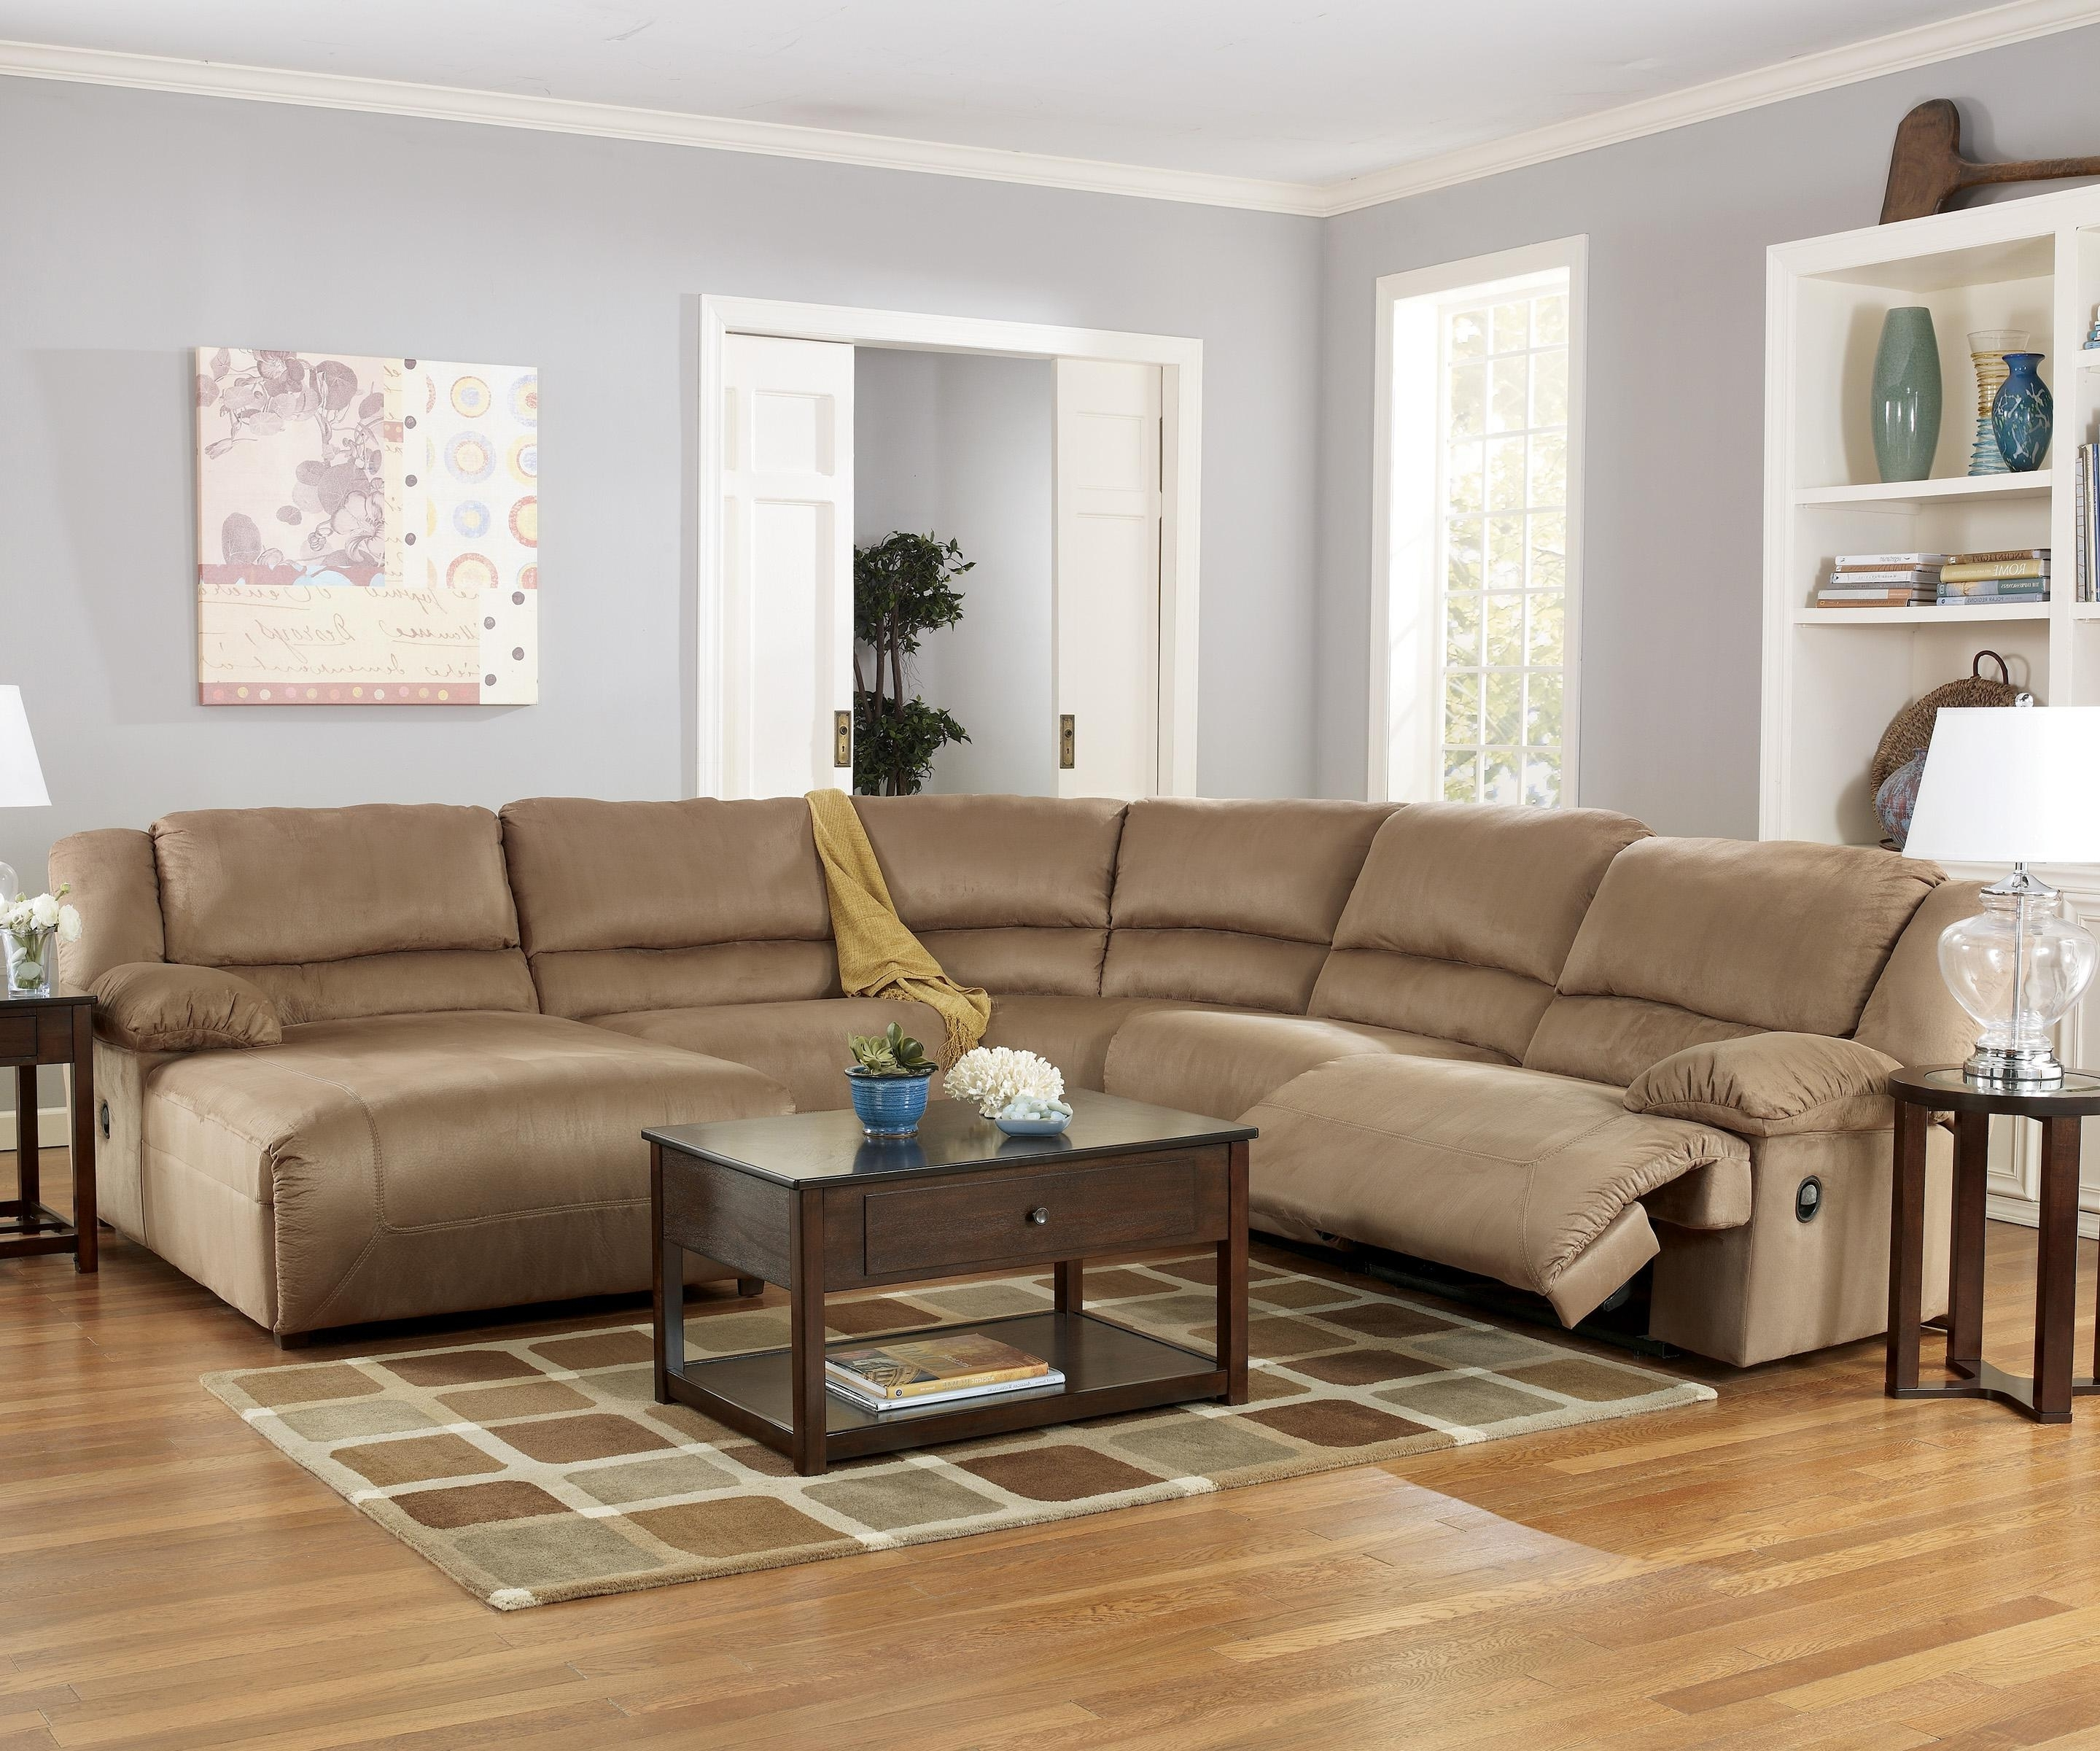 Ashley Furniture Pertaining To Widely Used El Paso Tx Sectional Sofas (View 1 of 20)